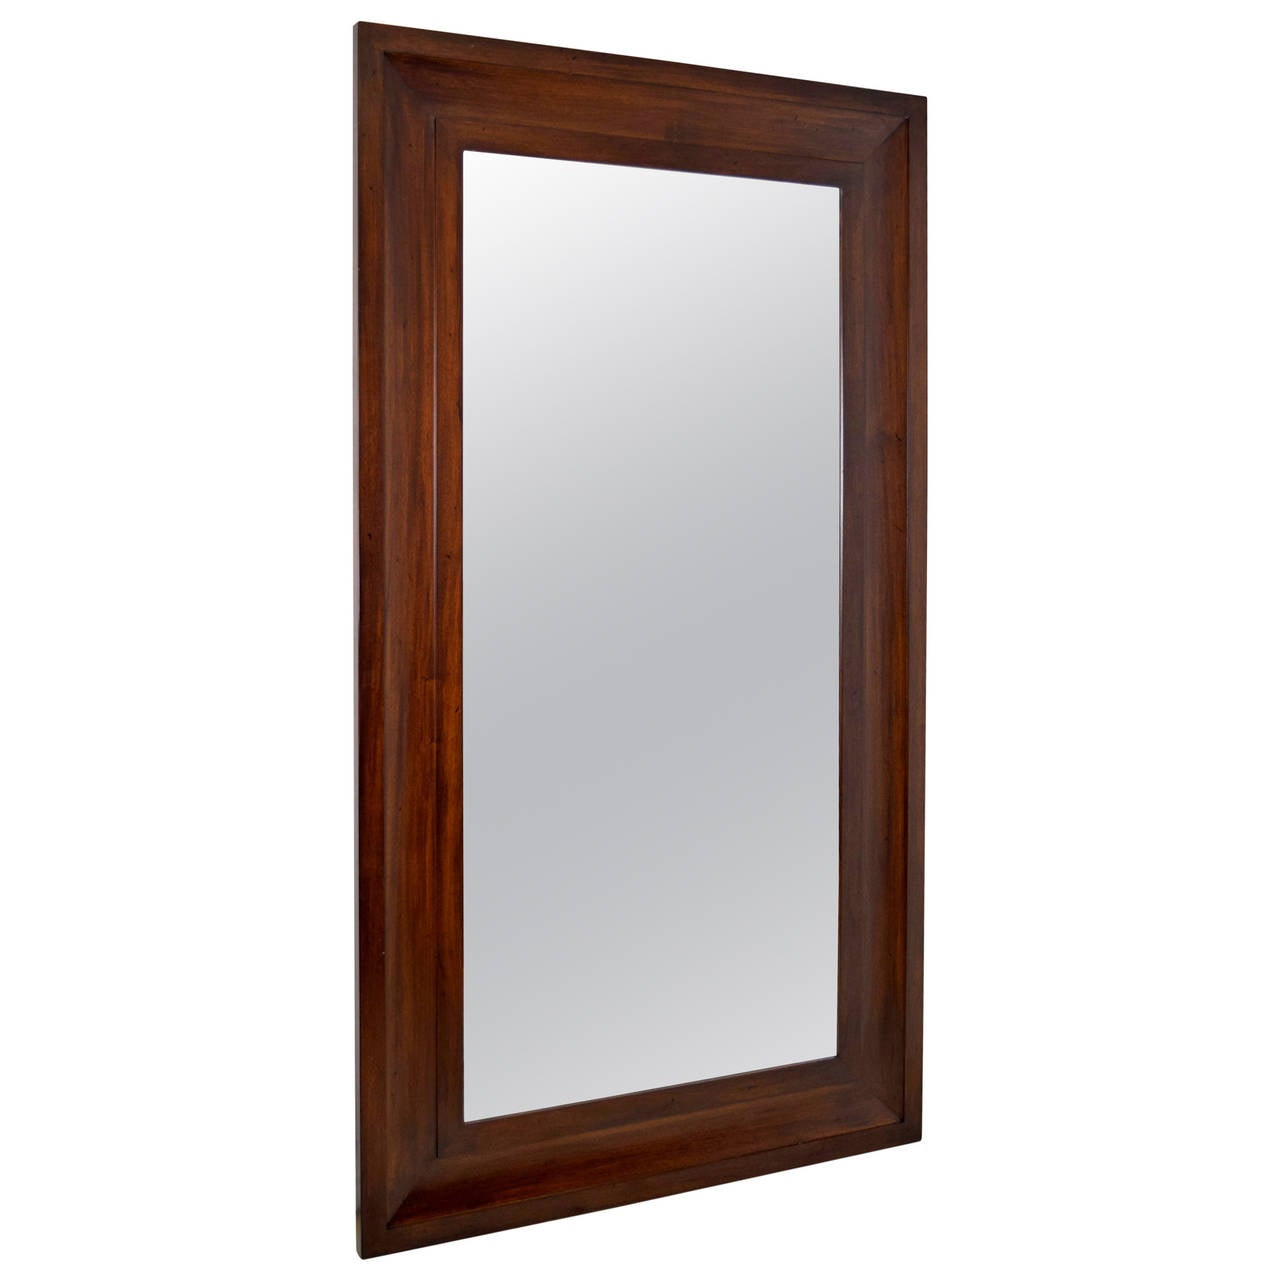 Custom very large mahogany frame wall mirror at 1stdibs for Tall framed mirror